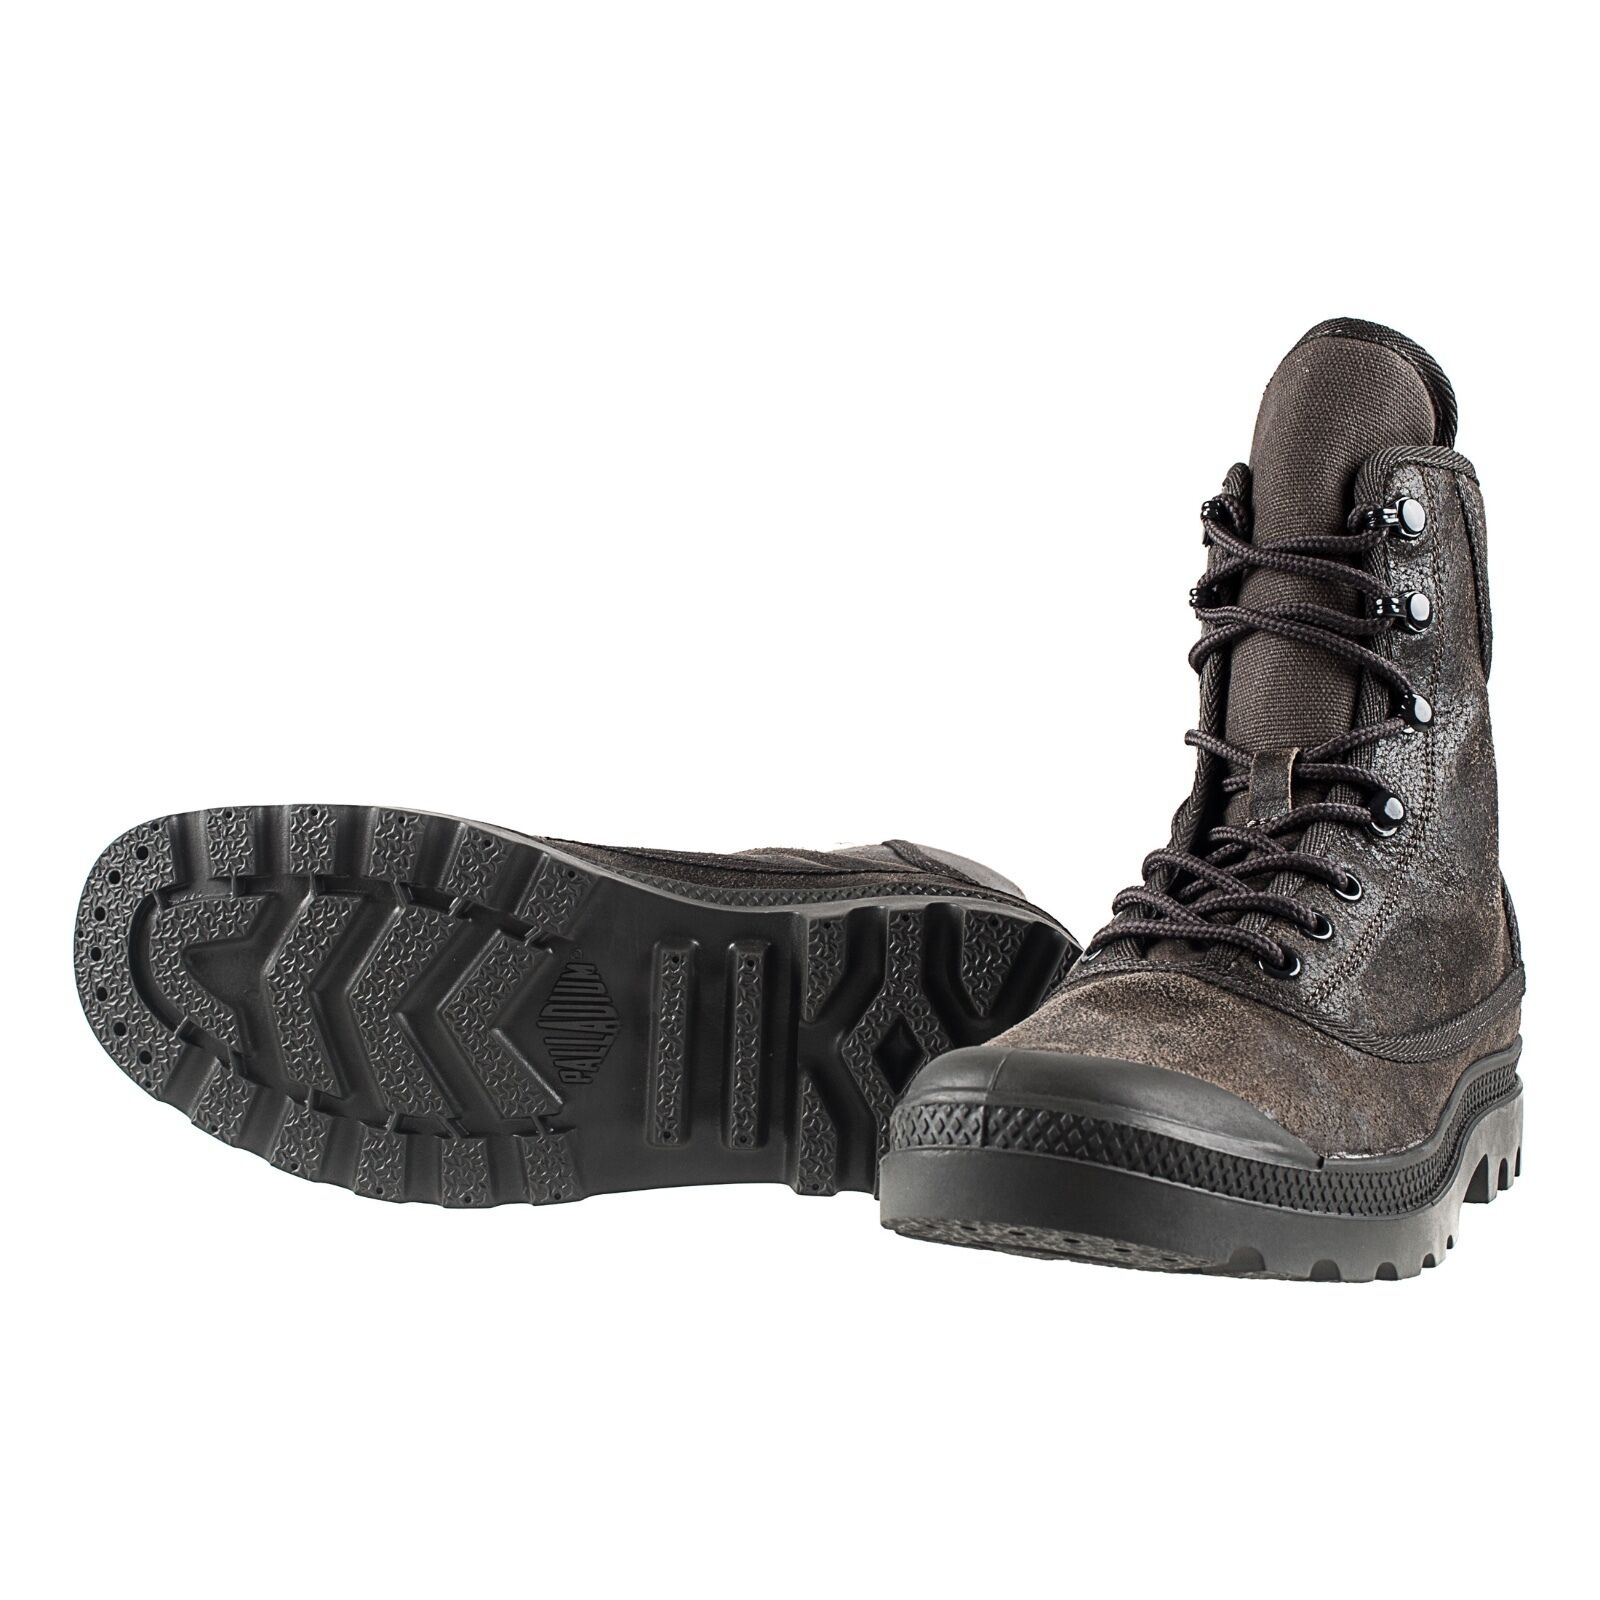 Palladium Engineer Boots Portugese Horse Leather